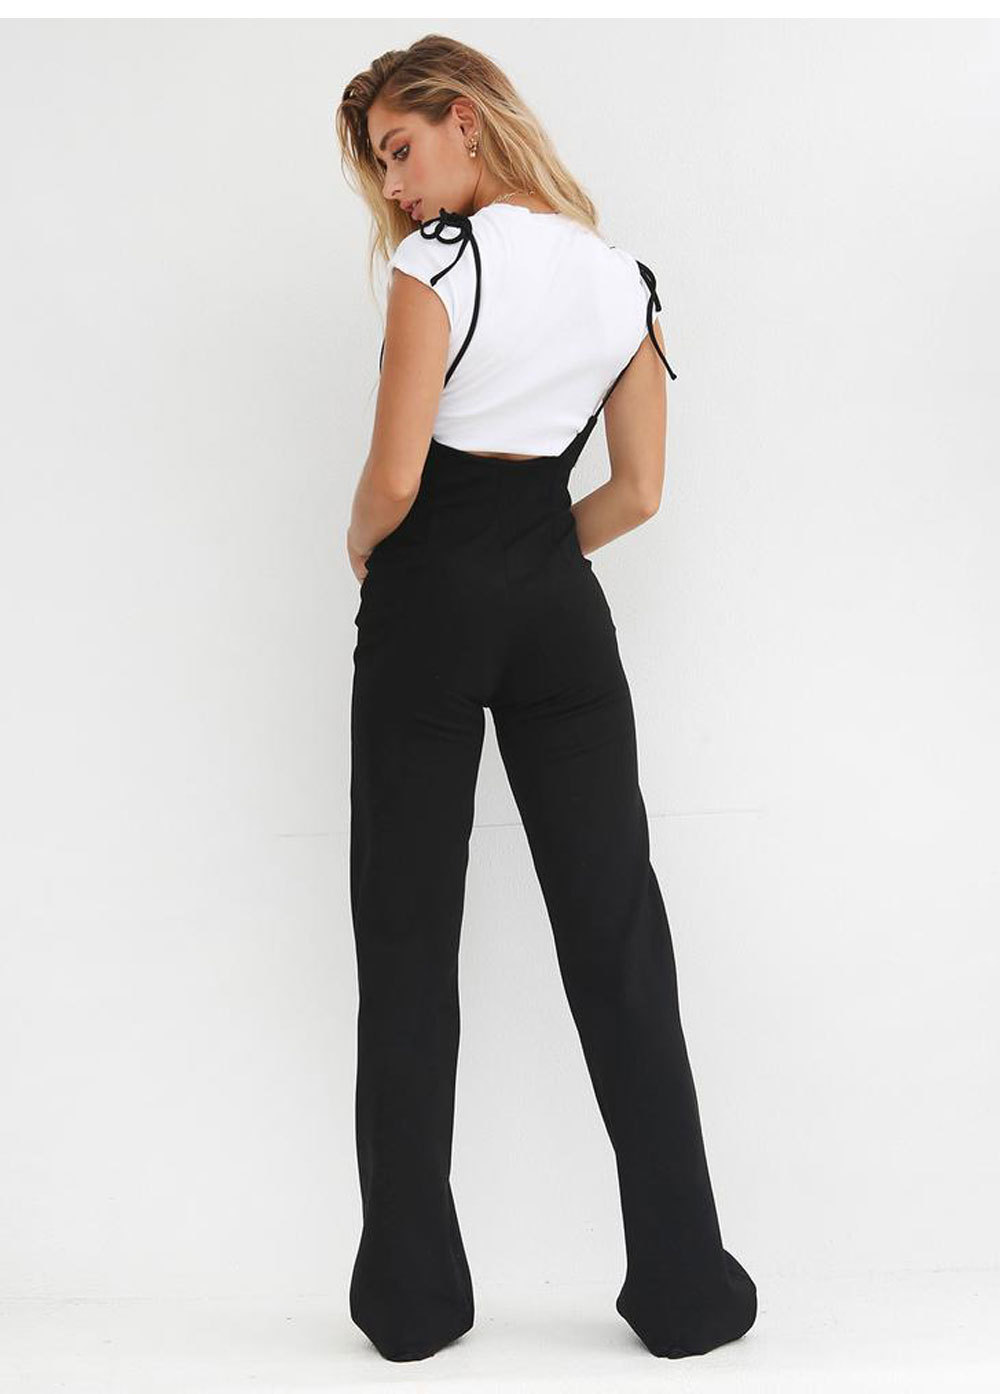 Soft Wide Leg Full-length High Black Lace-up Loose Trouser Pants